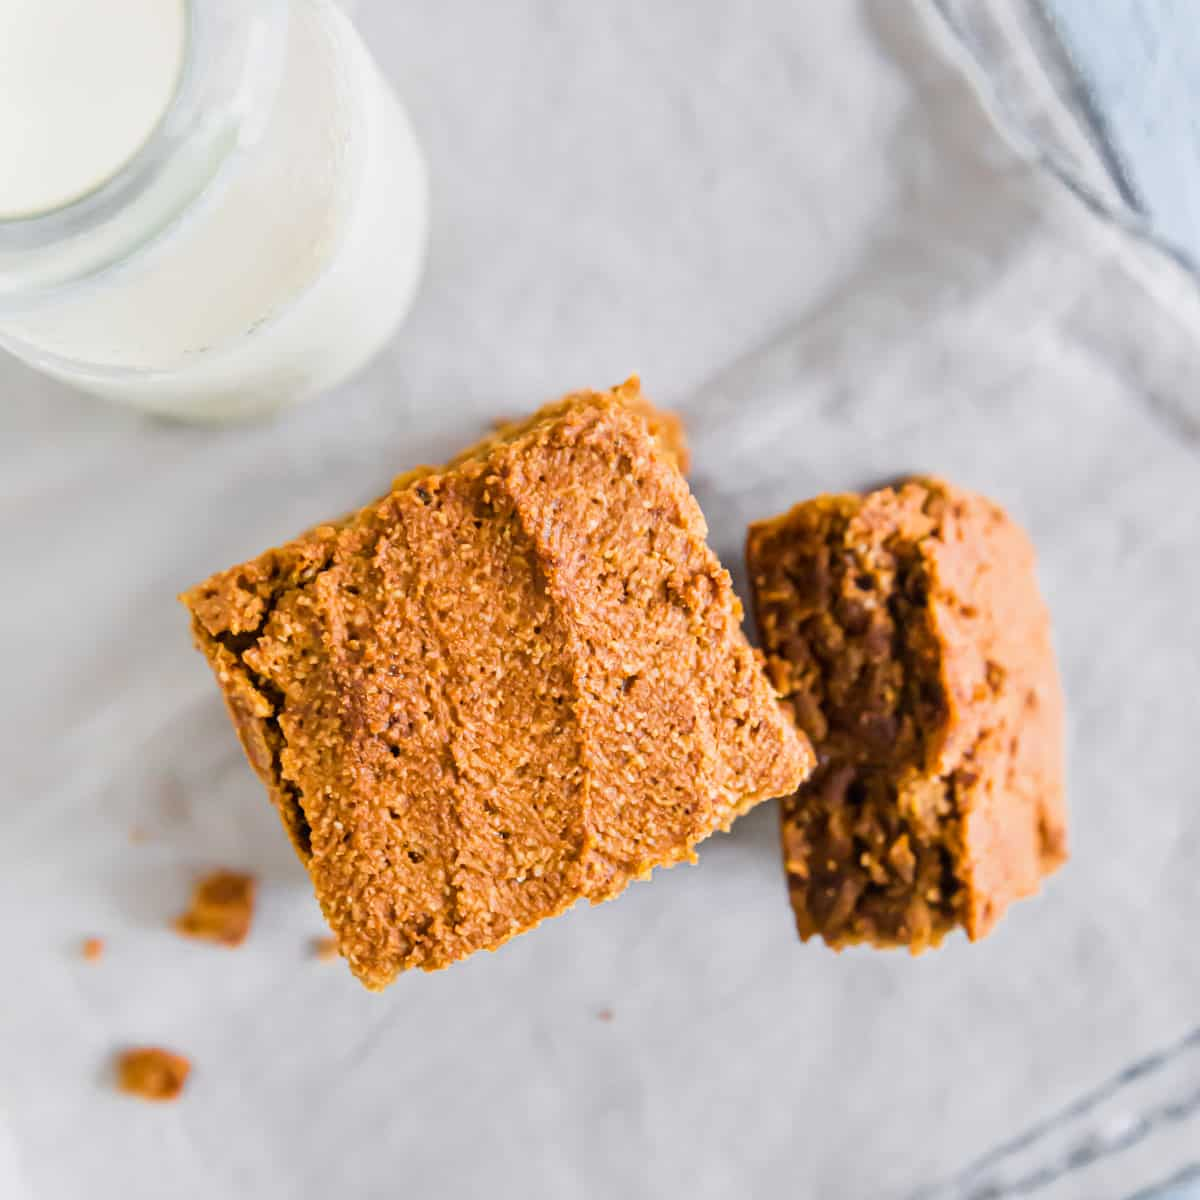 Soft, chewy and moist gluten-free pumpkin pie bars go perfectly with a glass of milk.